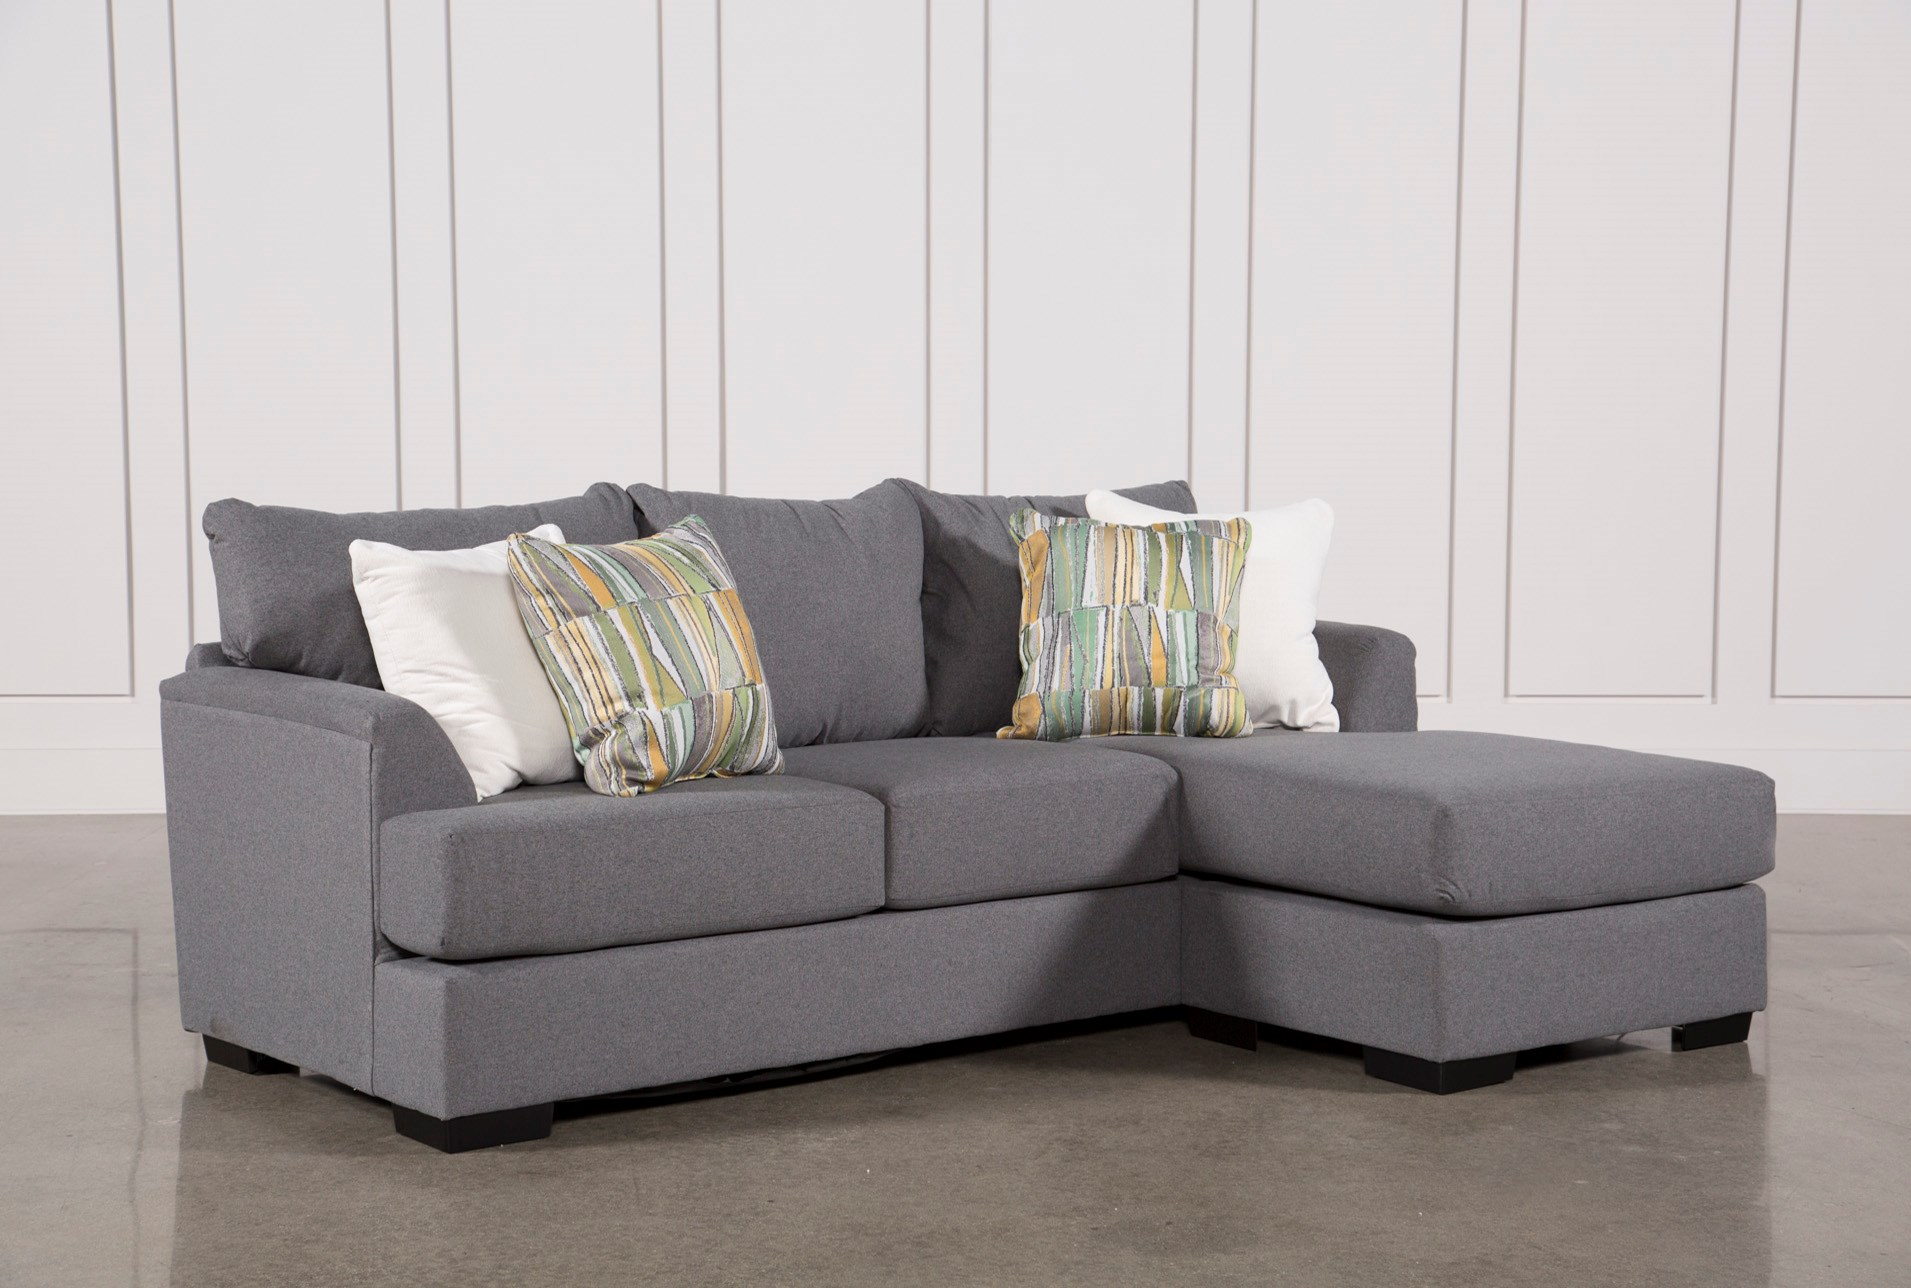 Keegan Sofa W Reversible Chaise Qty 1 Has Been Successfully Added To Your Cart